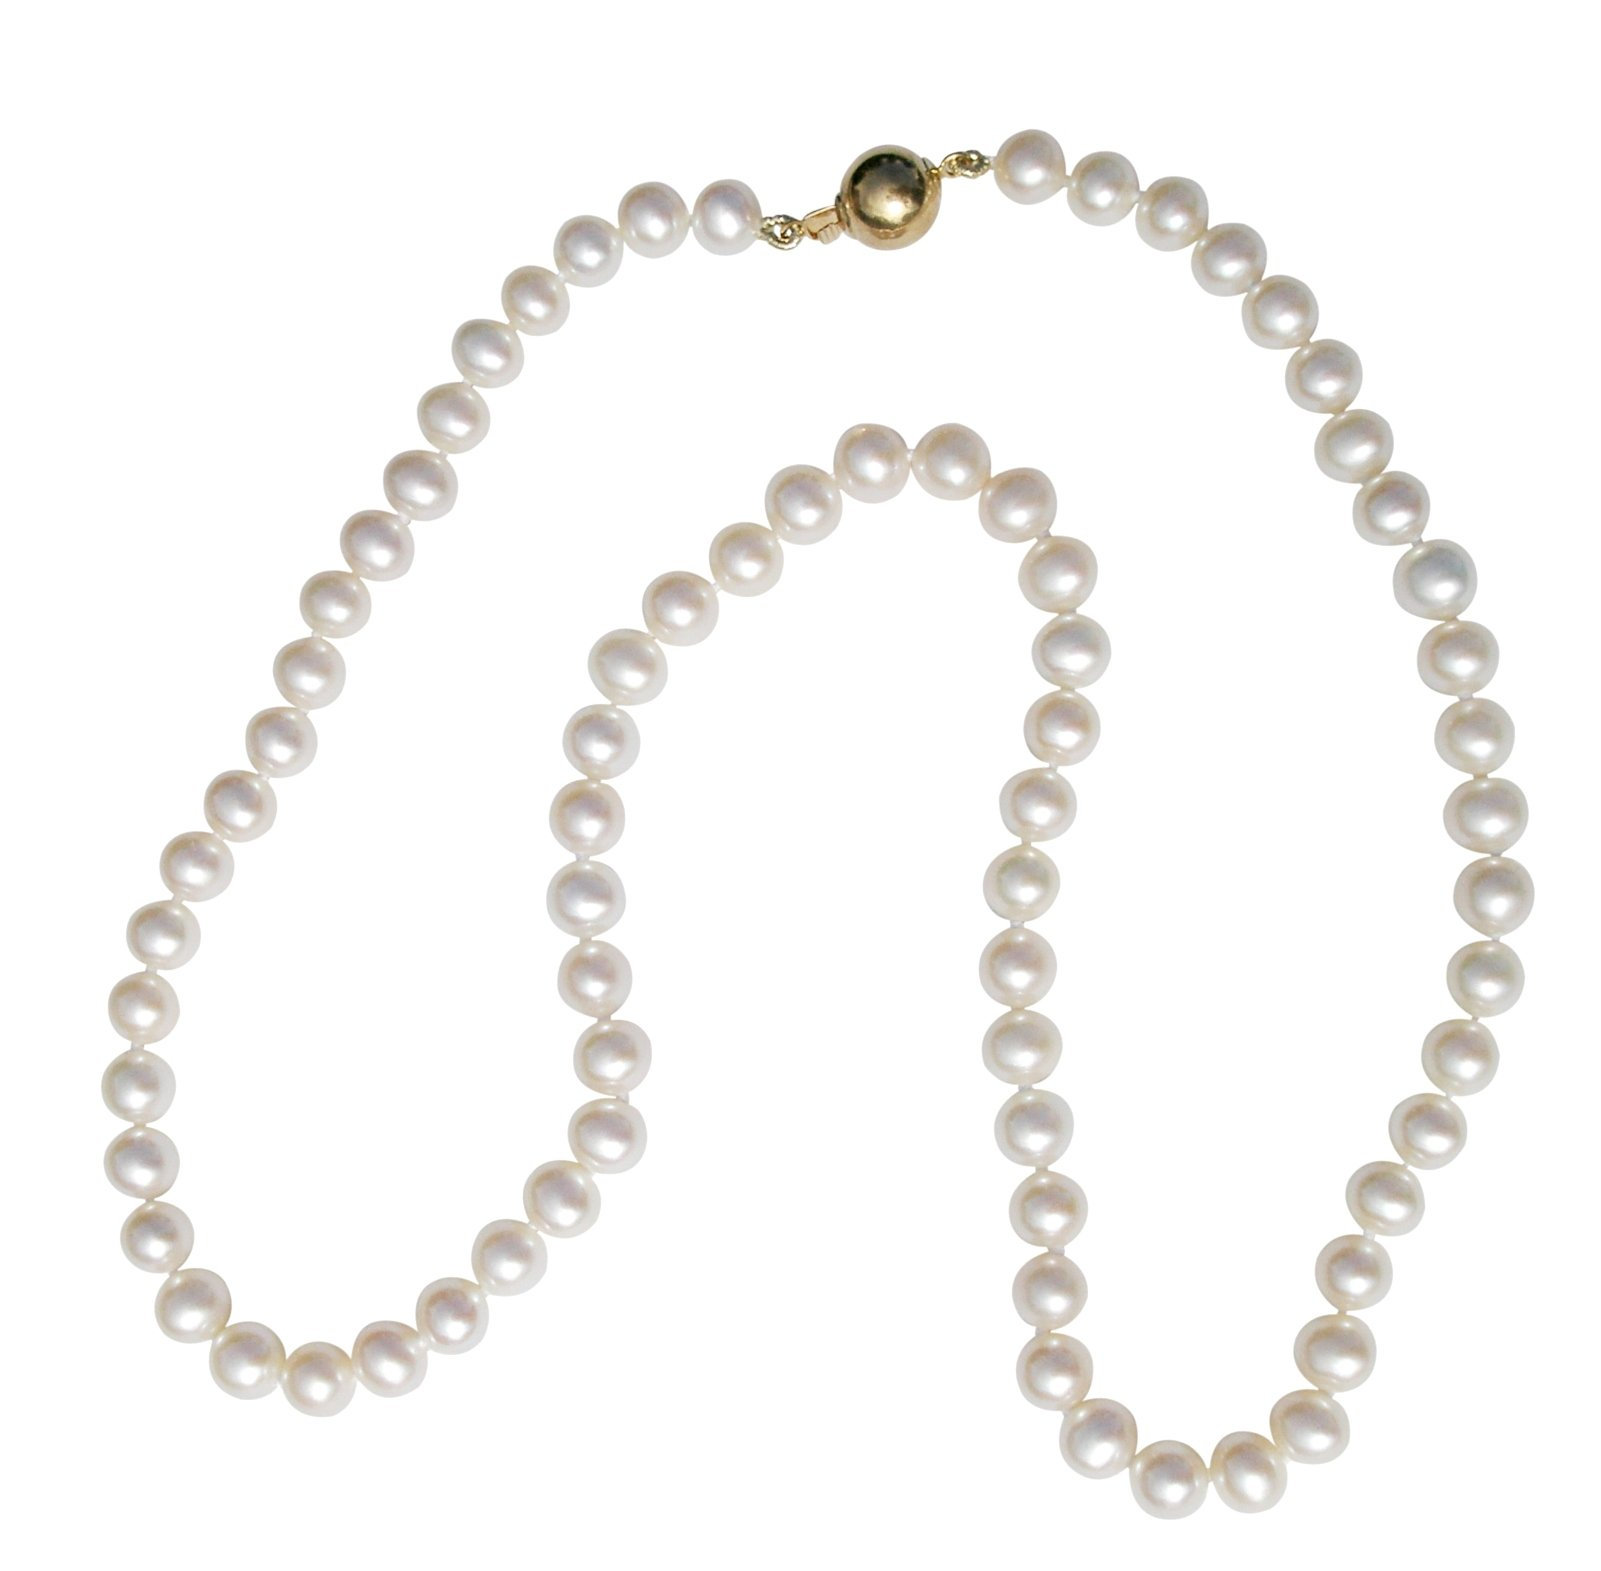 Classic White 6-7mm Cultured Pearl Necklace With A Pretty Round 14Carat Yellow Gold Clasp